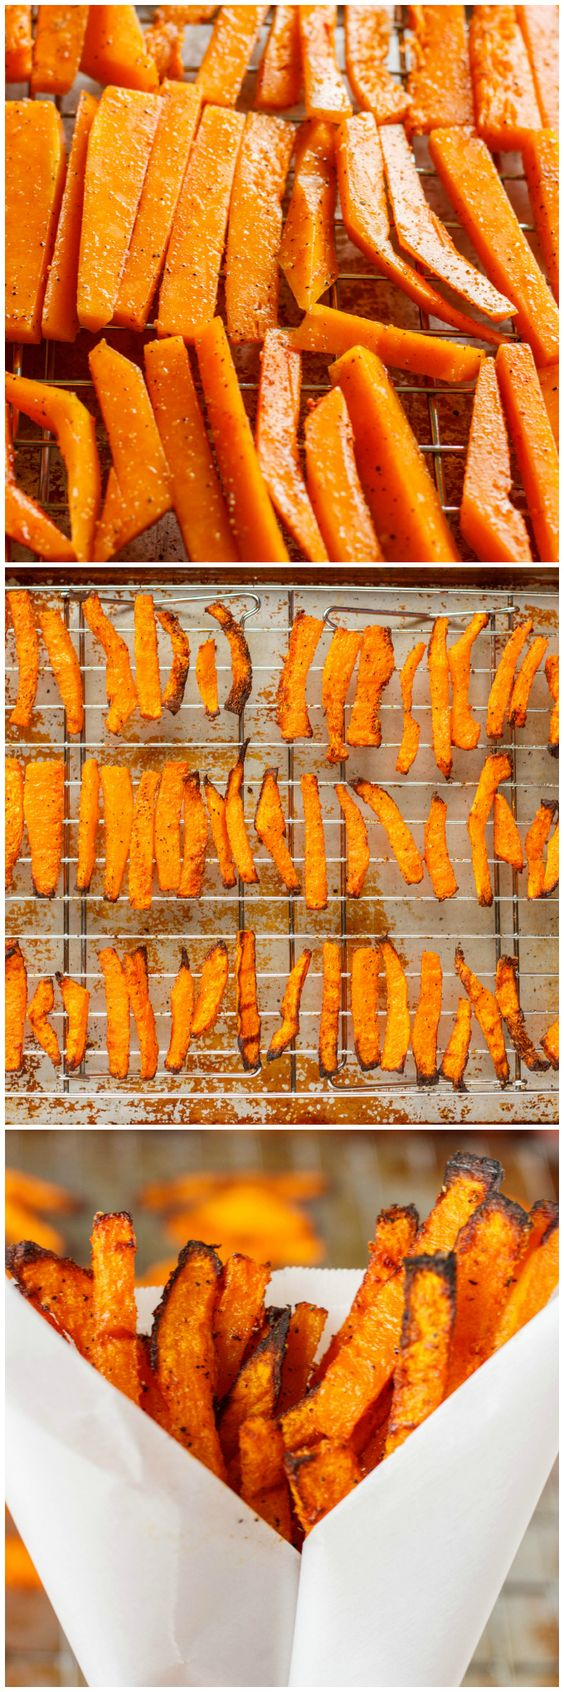 Butternut Squash Fries - so easy, with just olive oil and spices. Feel free to switch the spices up (try chipotle powder in place of paprika for D-Burn).